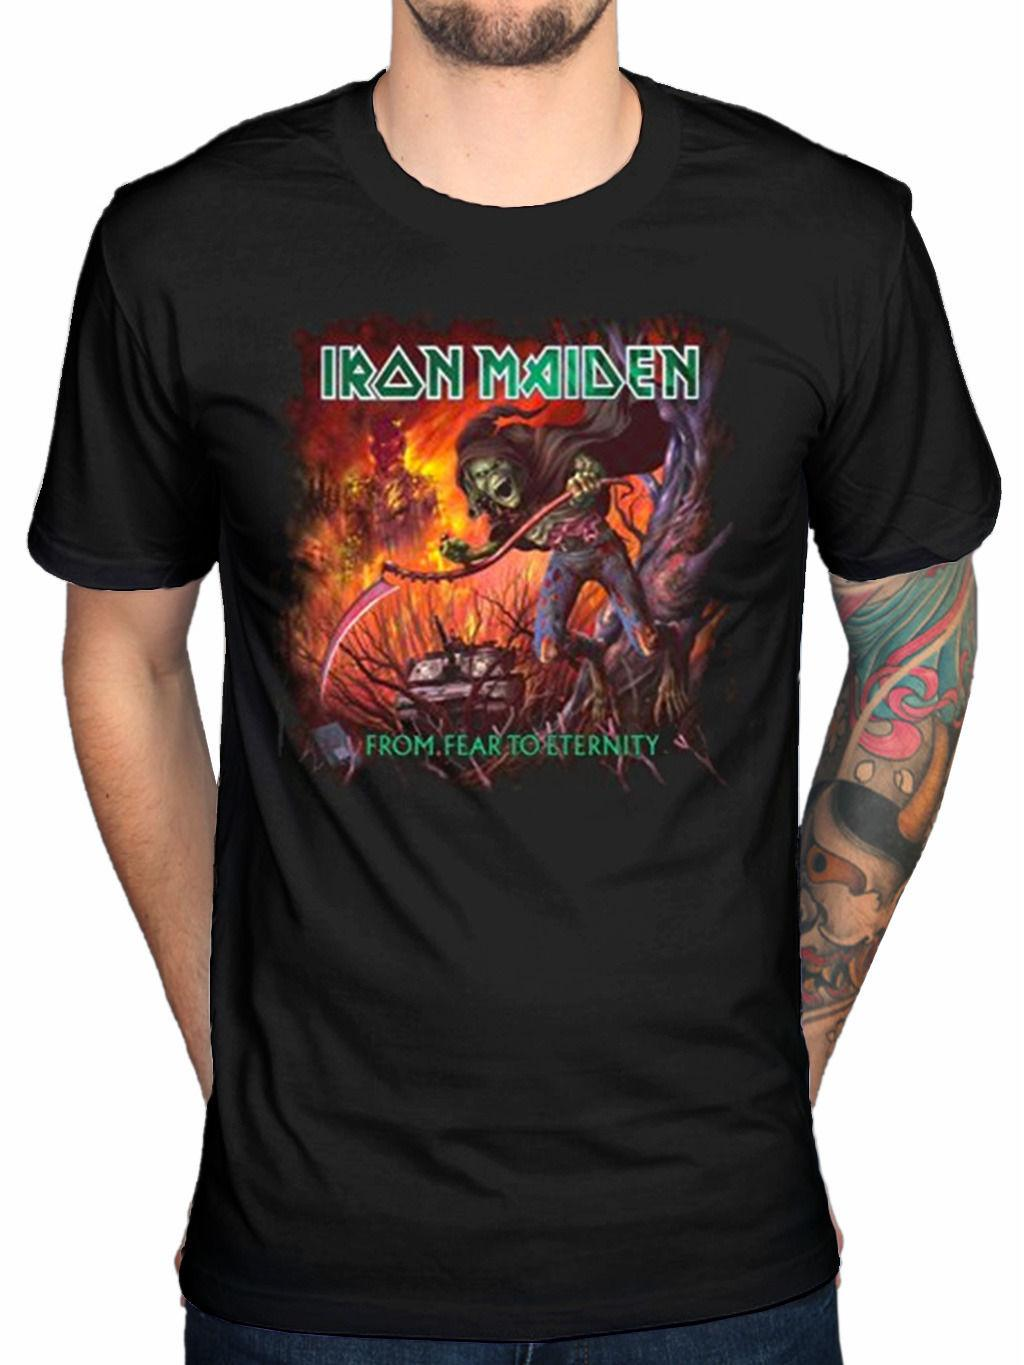 0d2163fa Official Iron Maiden From Fear To Eternity Album T Shirt Final Frontier  Virtual Tee Shirt Of The Day Link Shirts From Shadowtshirt, $13.19   DHgate.Com